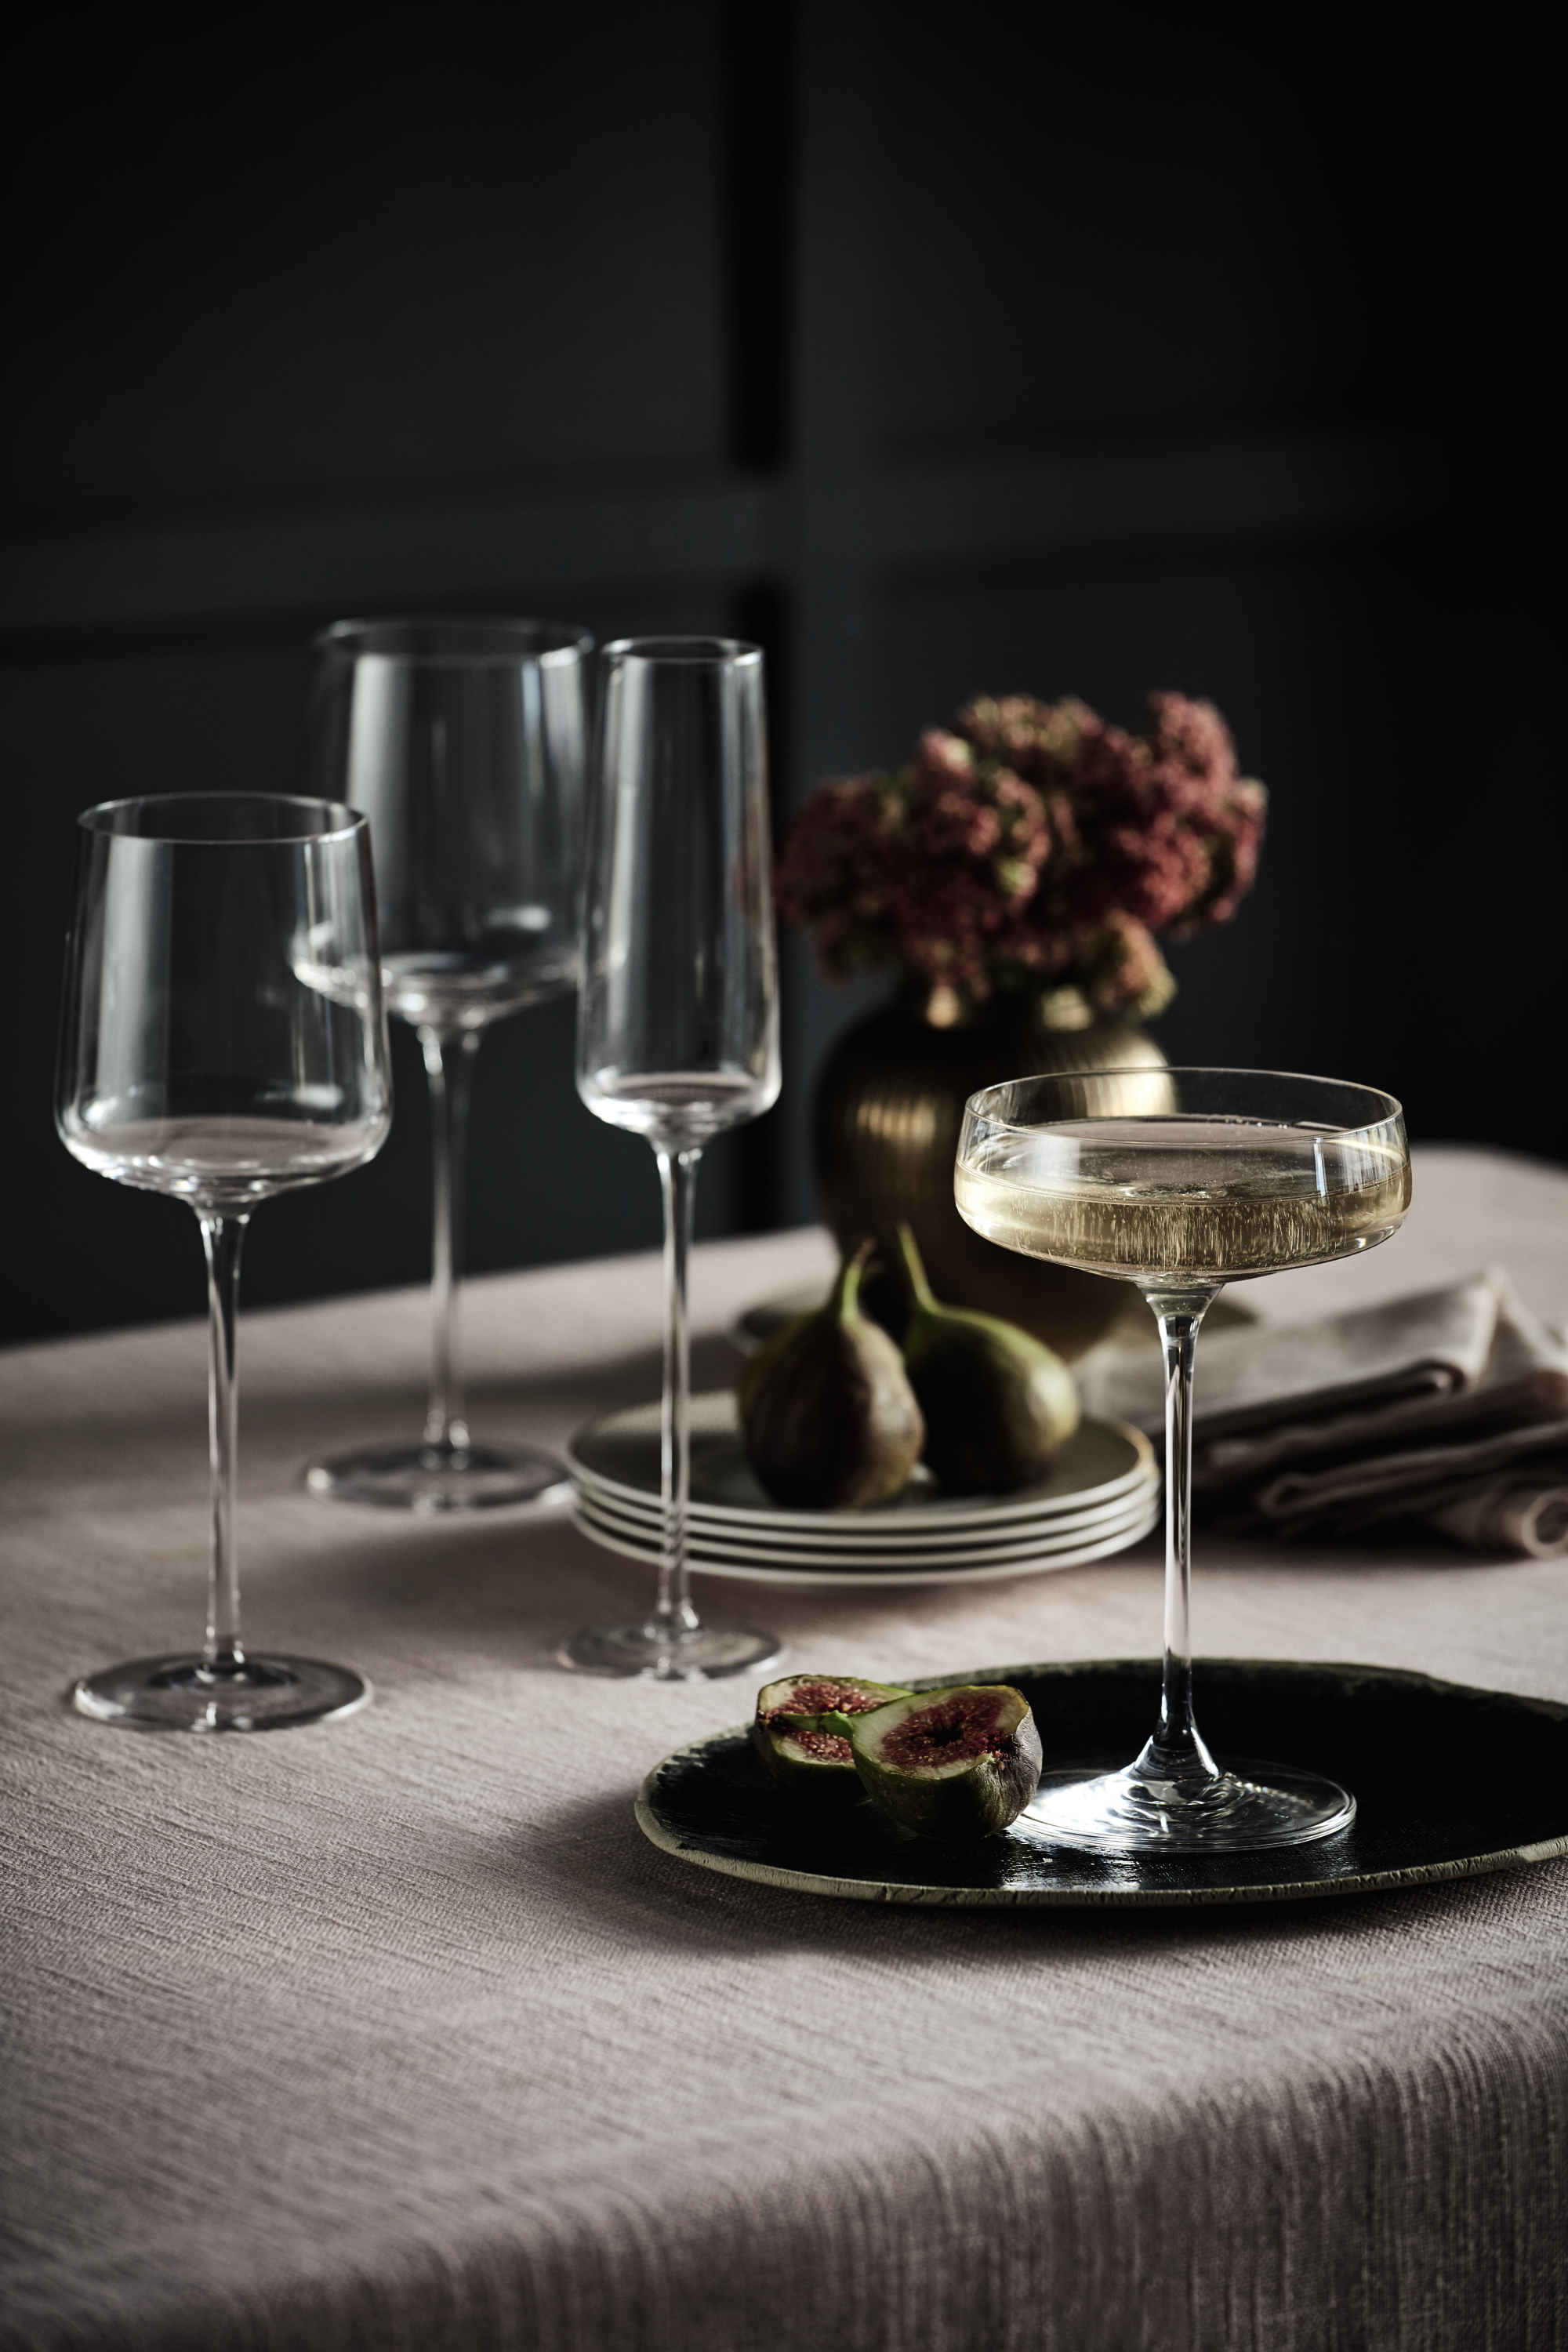 Upgrade your Friday night glass of wine with these elegant